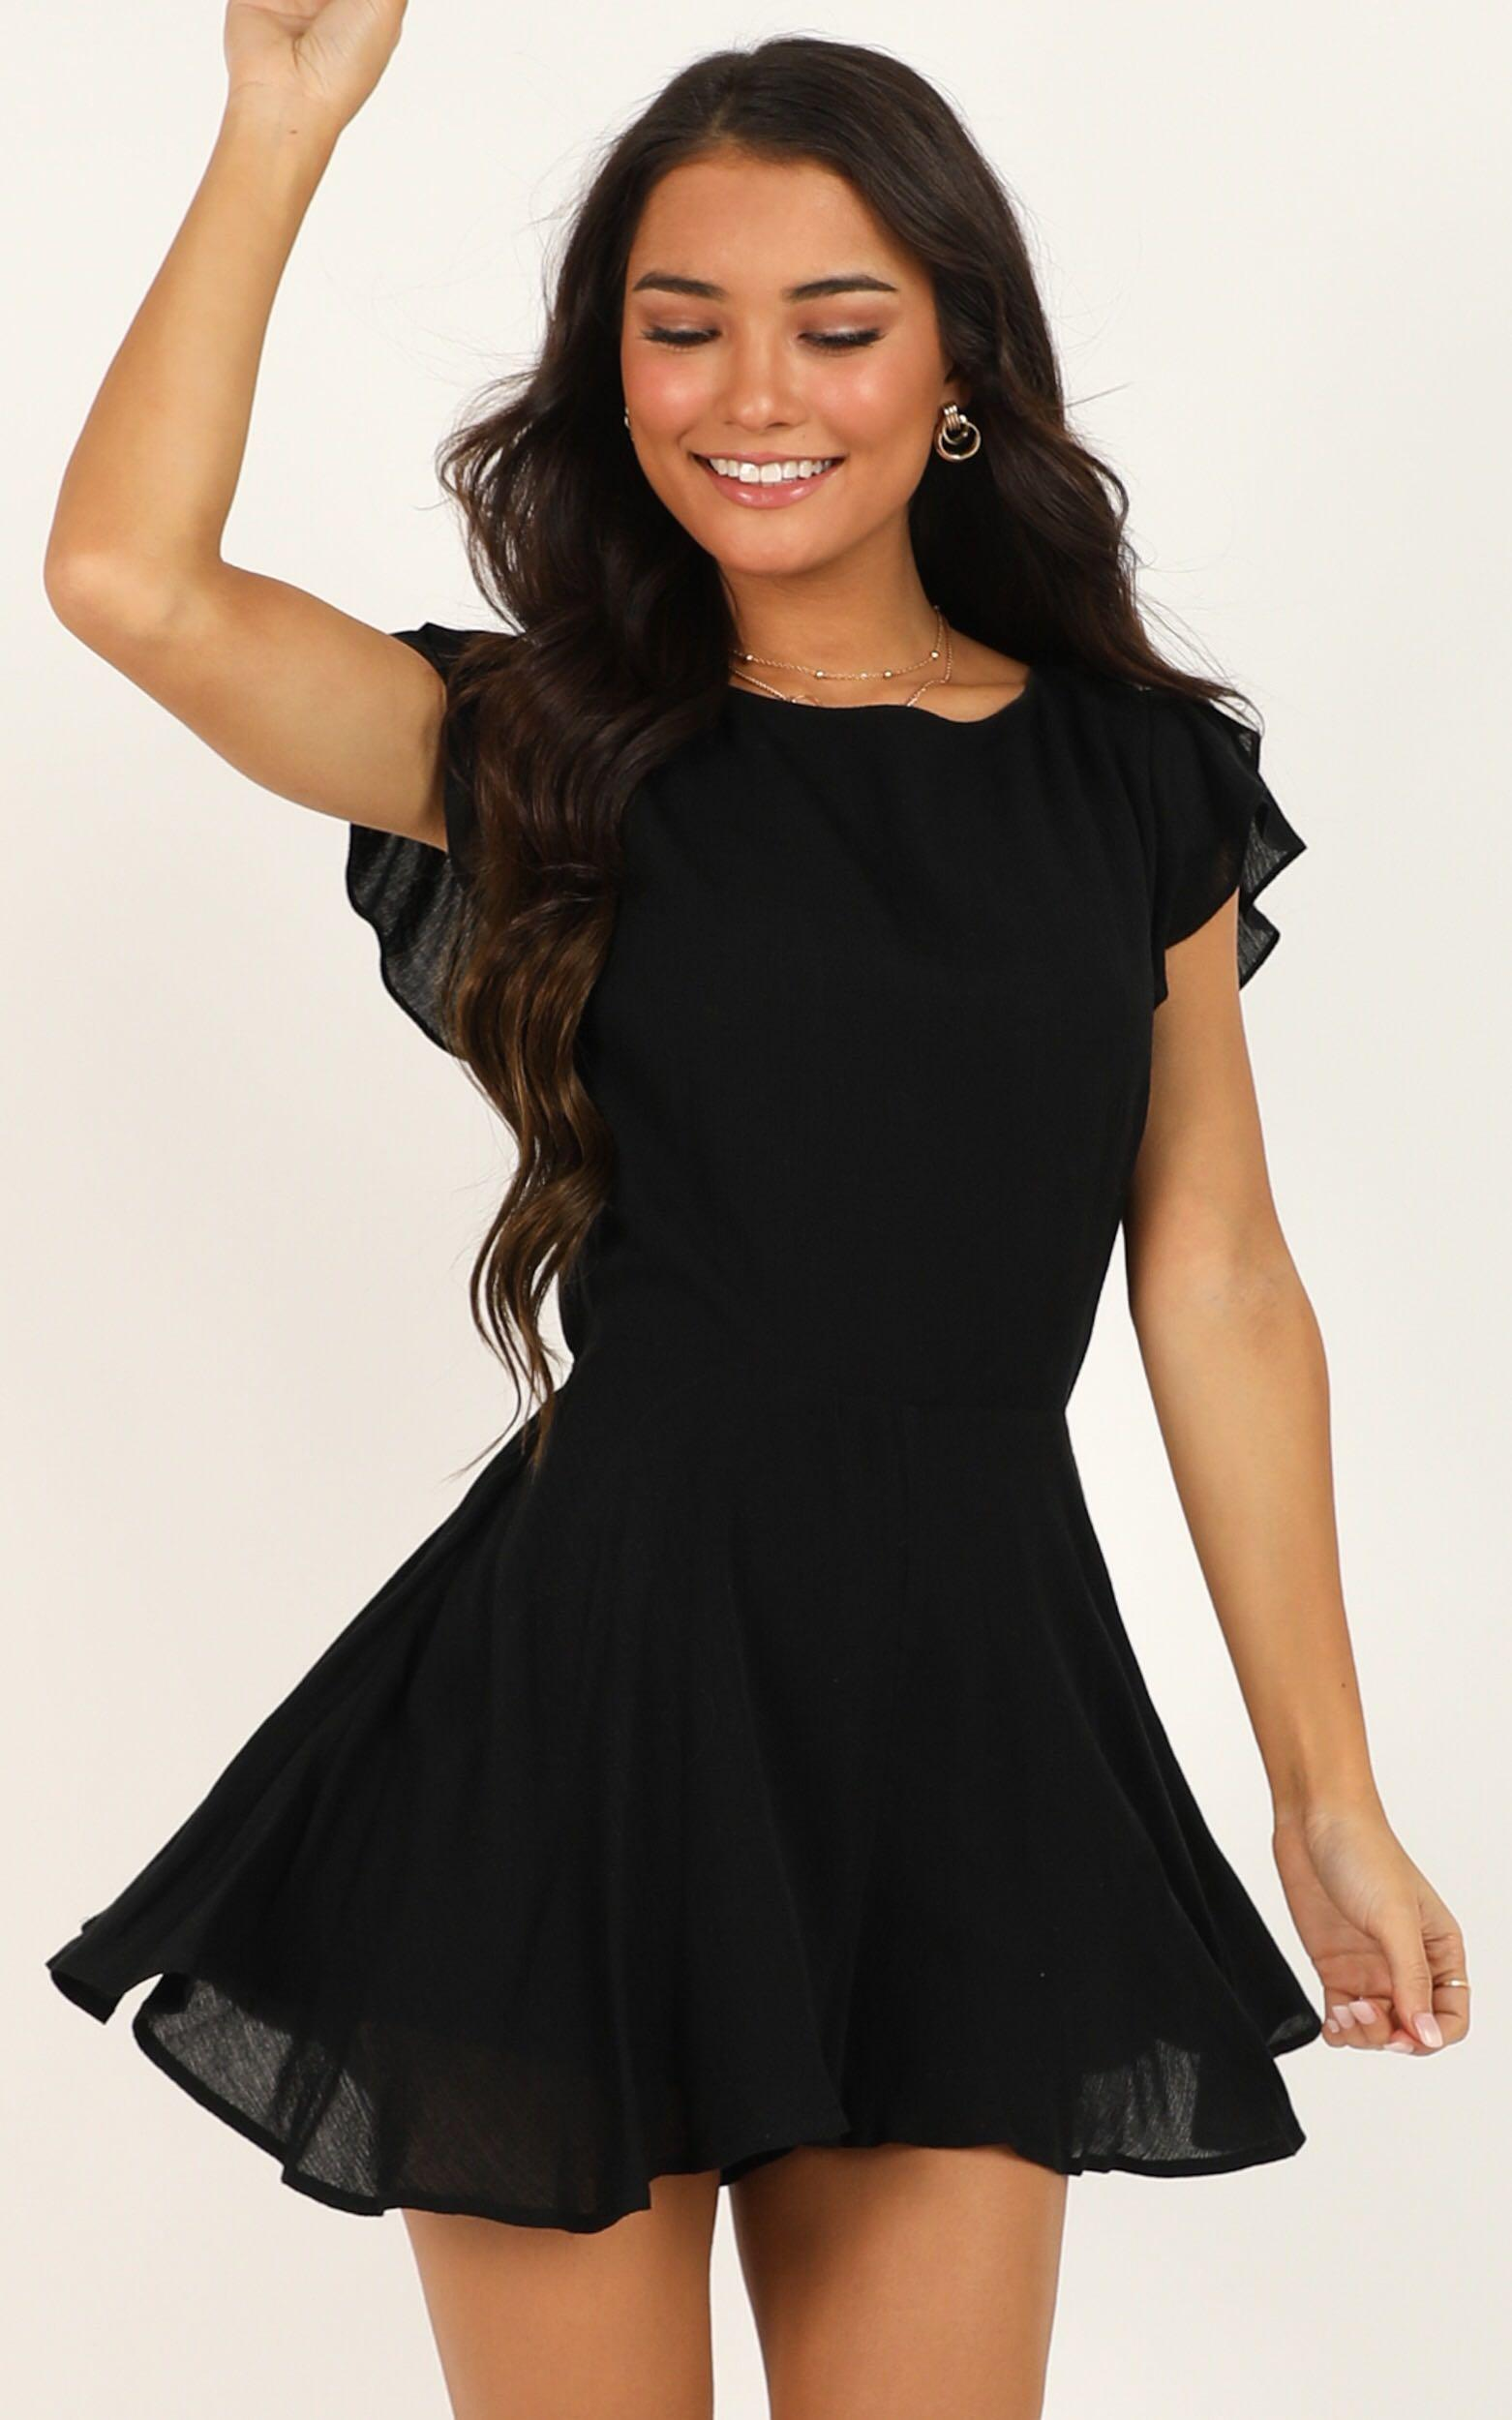 Fortunate Love Playsuit in black - 20 (XXXXL), Black, hi-res image number null